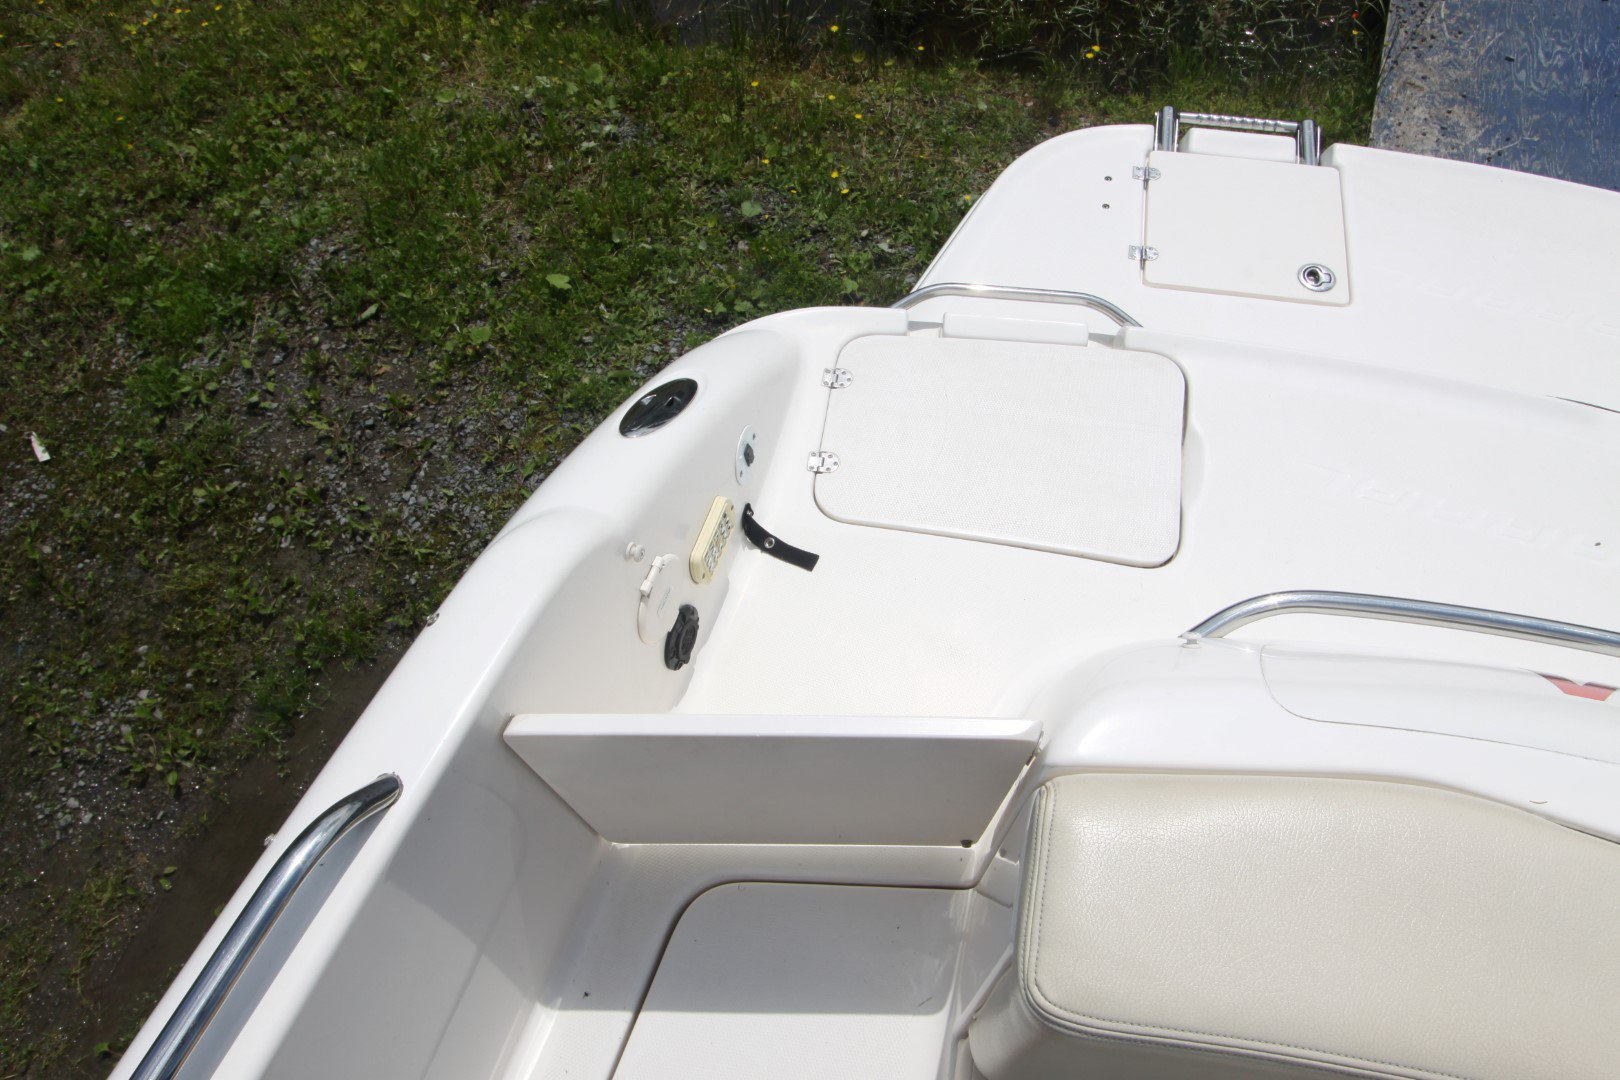 Chaparral 230 SSI - IMG_5945